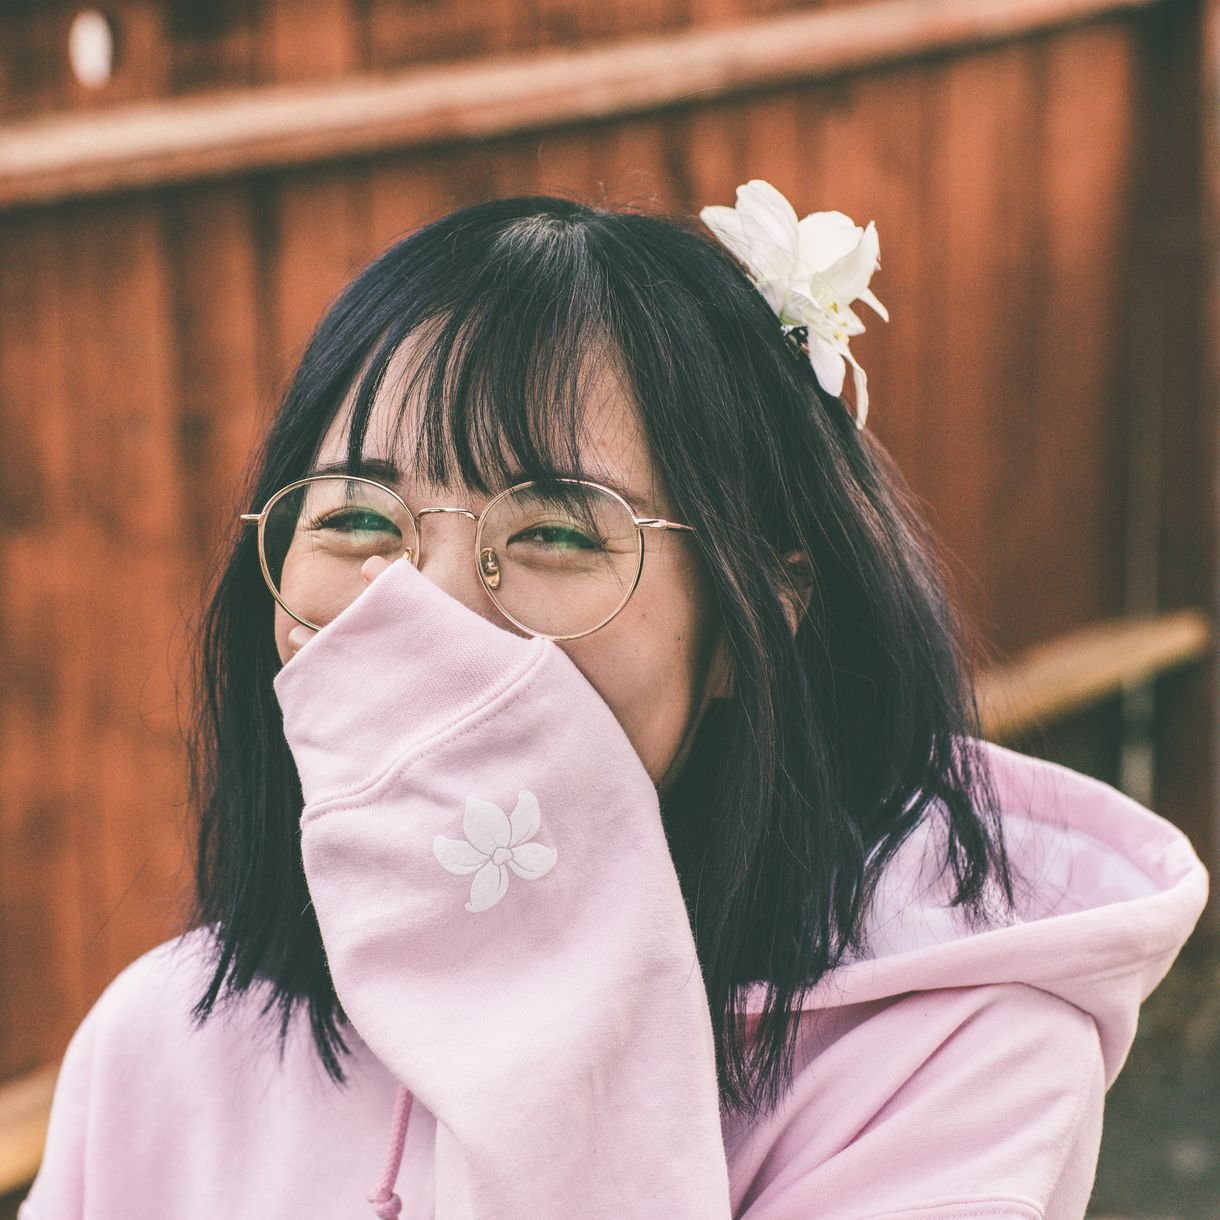 Stay Comfy Hoodie - Signature Edition With Custom Hood Lining - LilyPichu Store